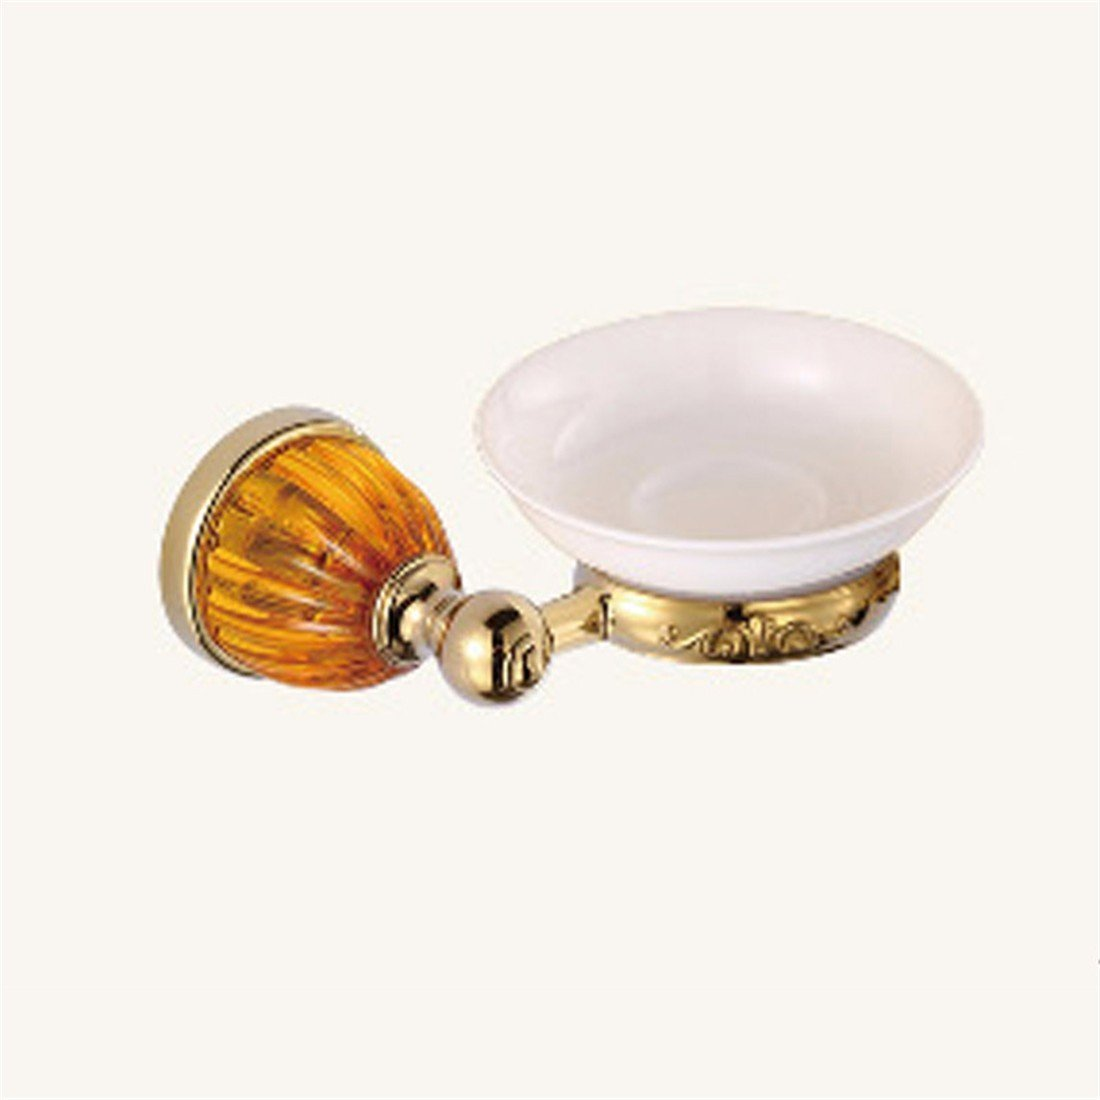 LAONA European style gold zinc alloy amber base bathroom fittings towel ring single and double rod,Soap dish